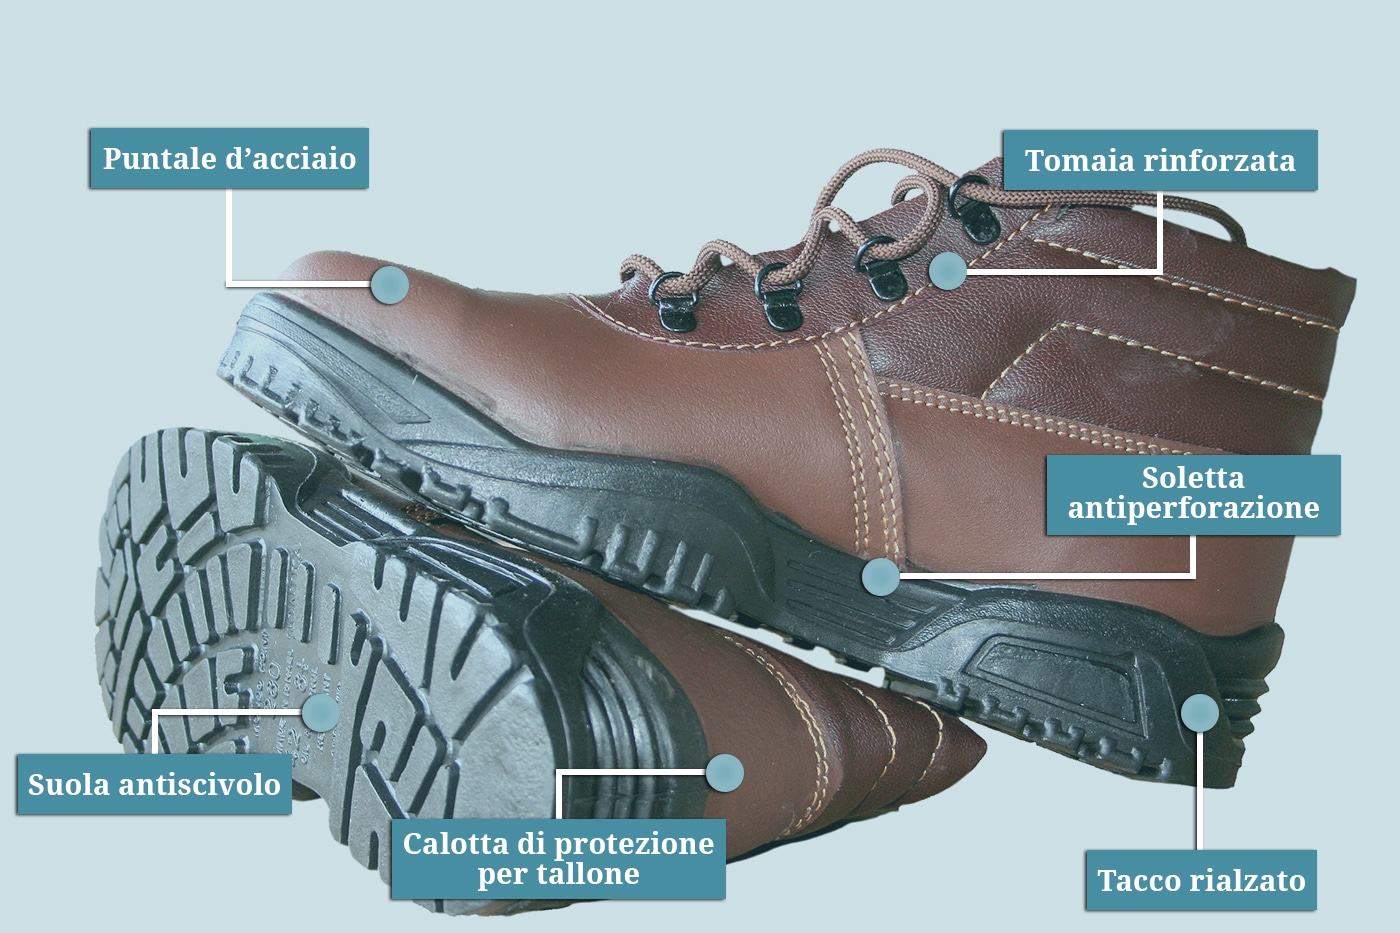 official photos 4faaa 64352 Scarpe antinfortunistiche: come prevenire e risolvere il ...